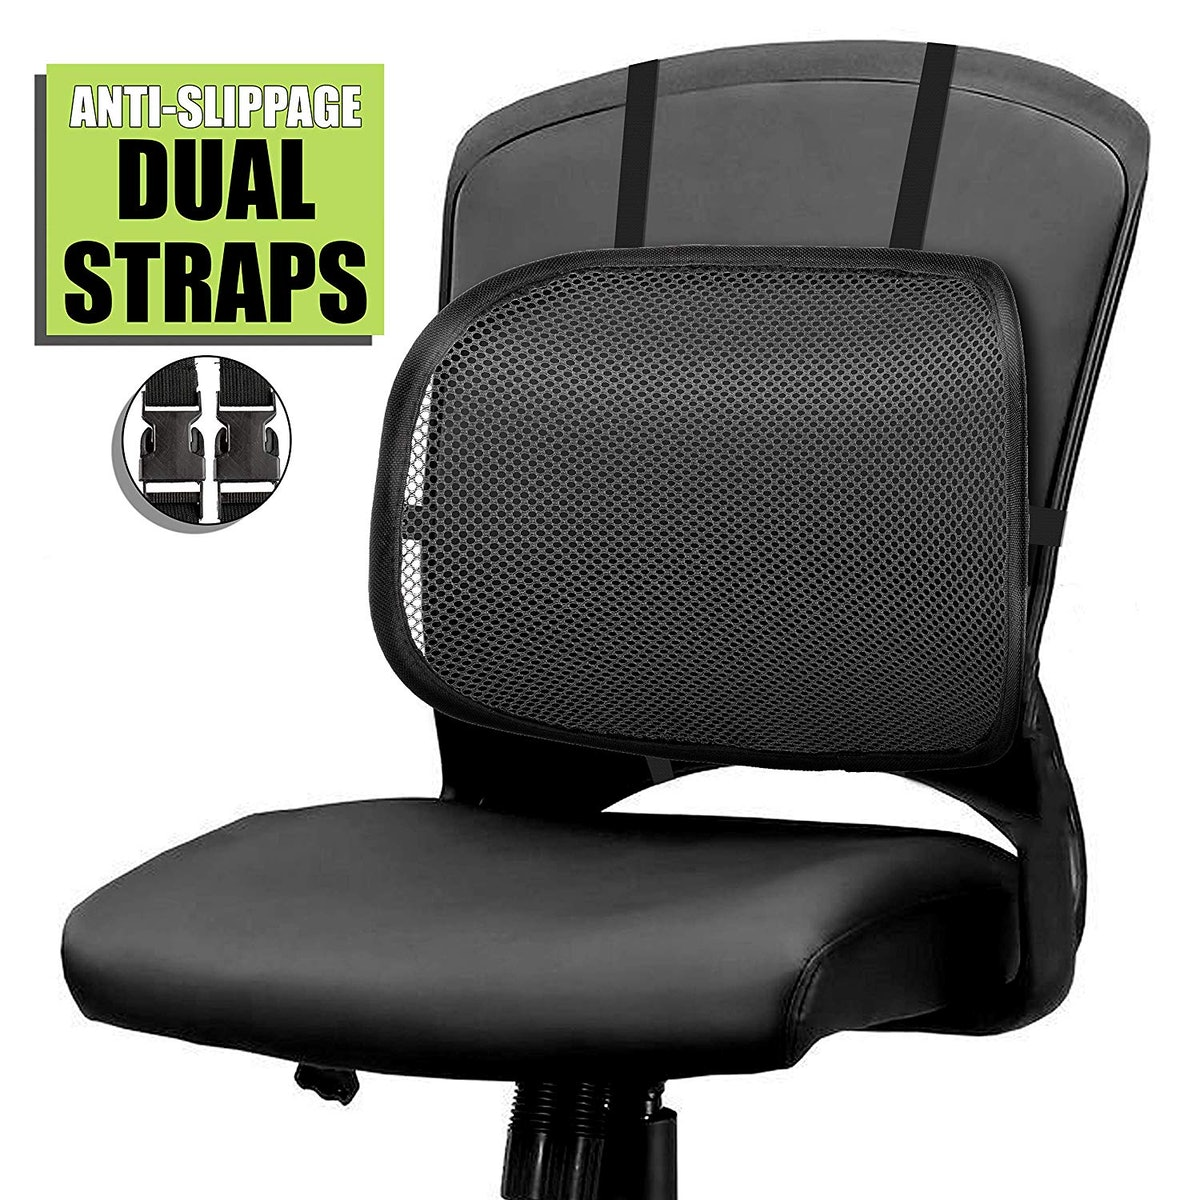 Easy Posture Brands Lumbar Back Support